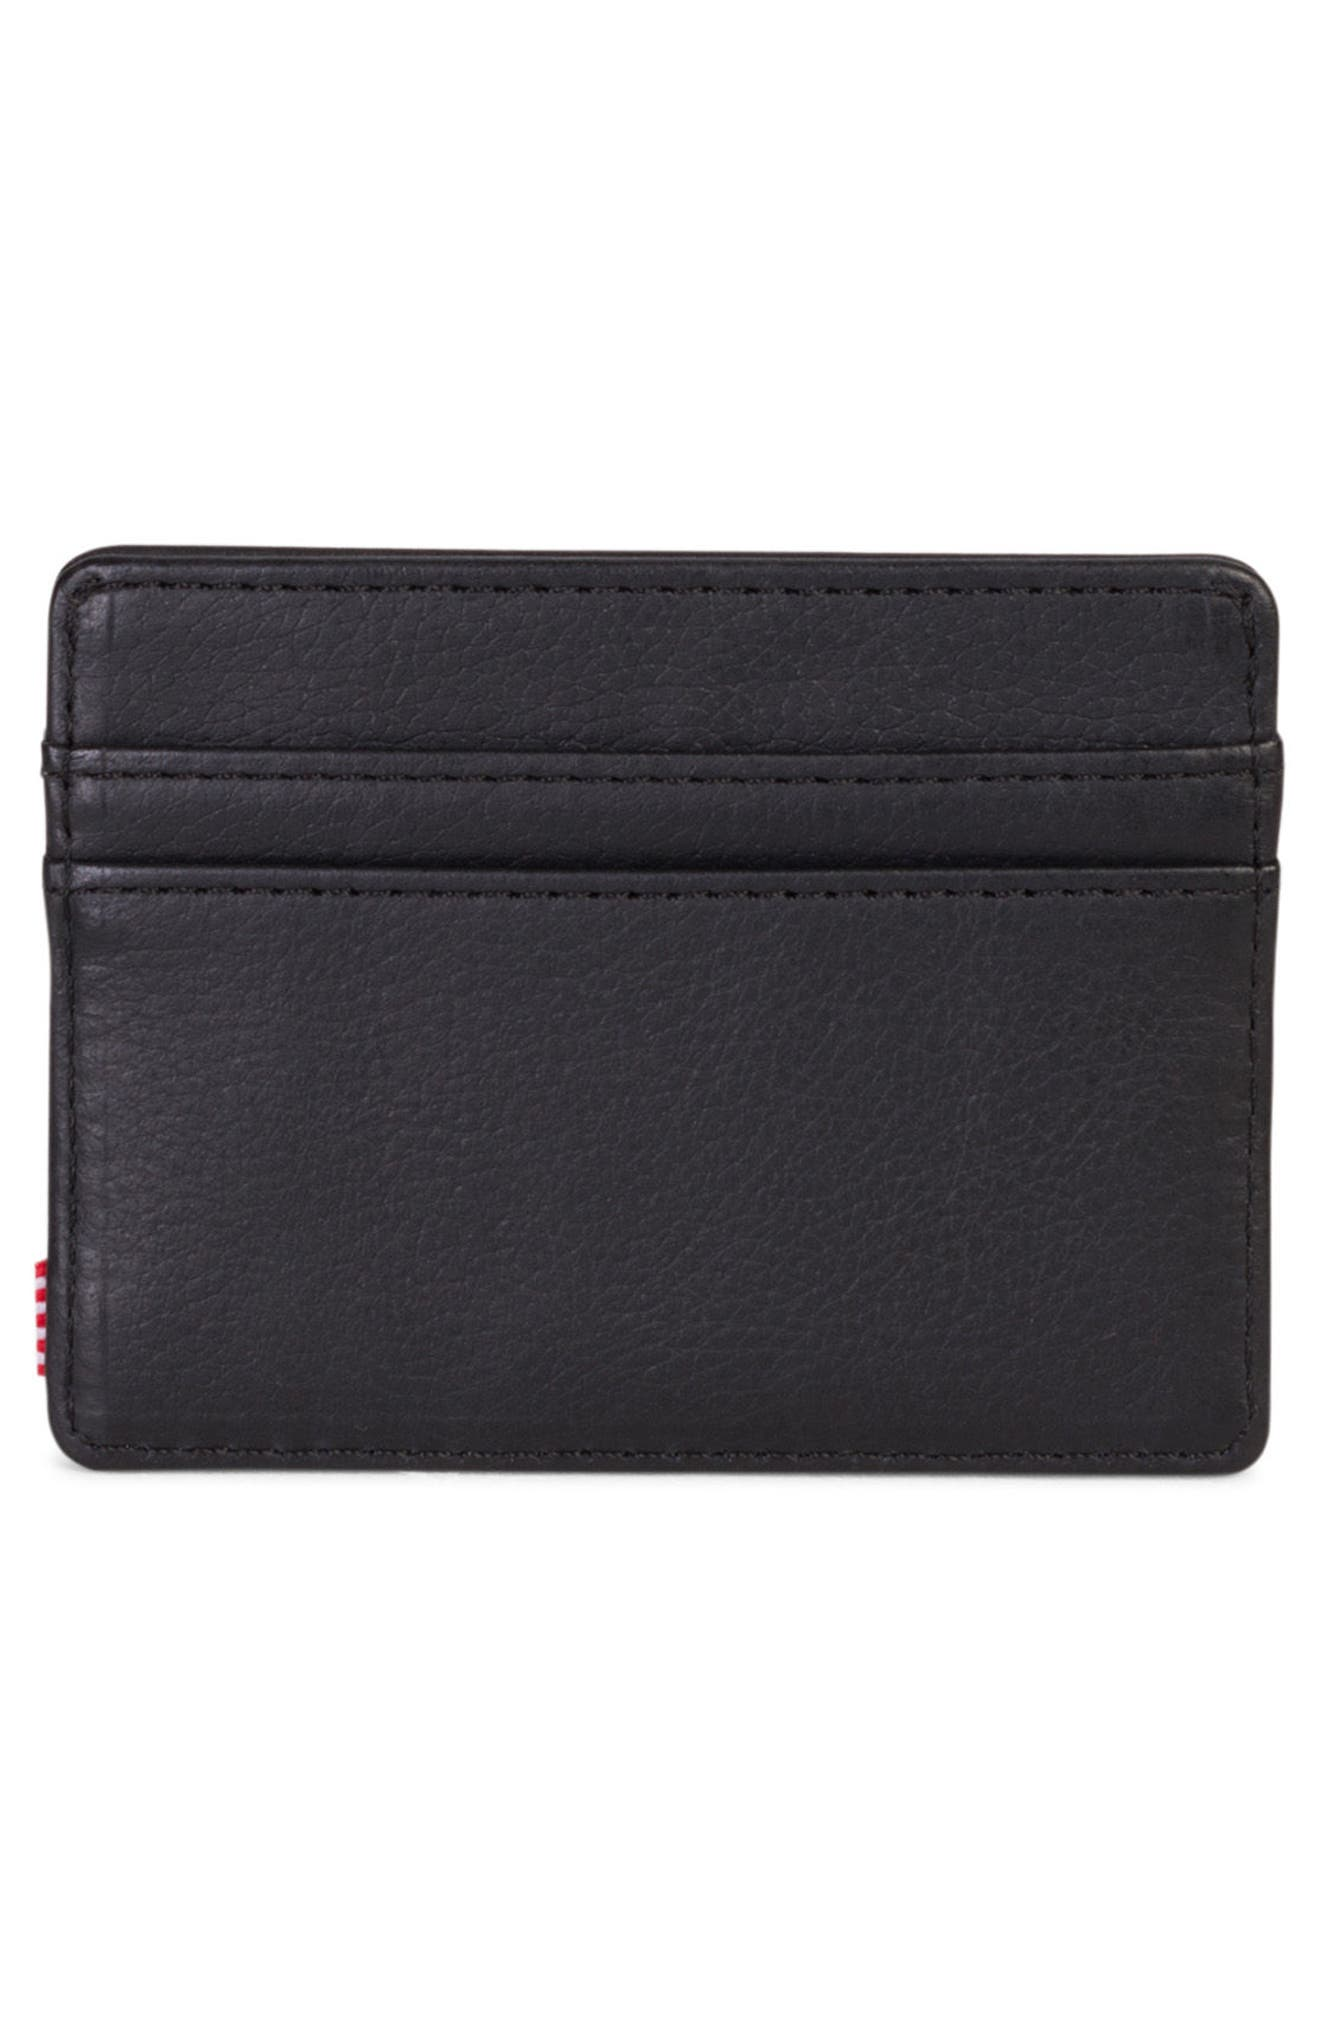 Charlie Leather Card Case,                             Alternate thumbnail 3, color,                             005